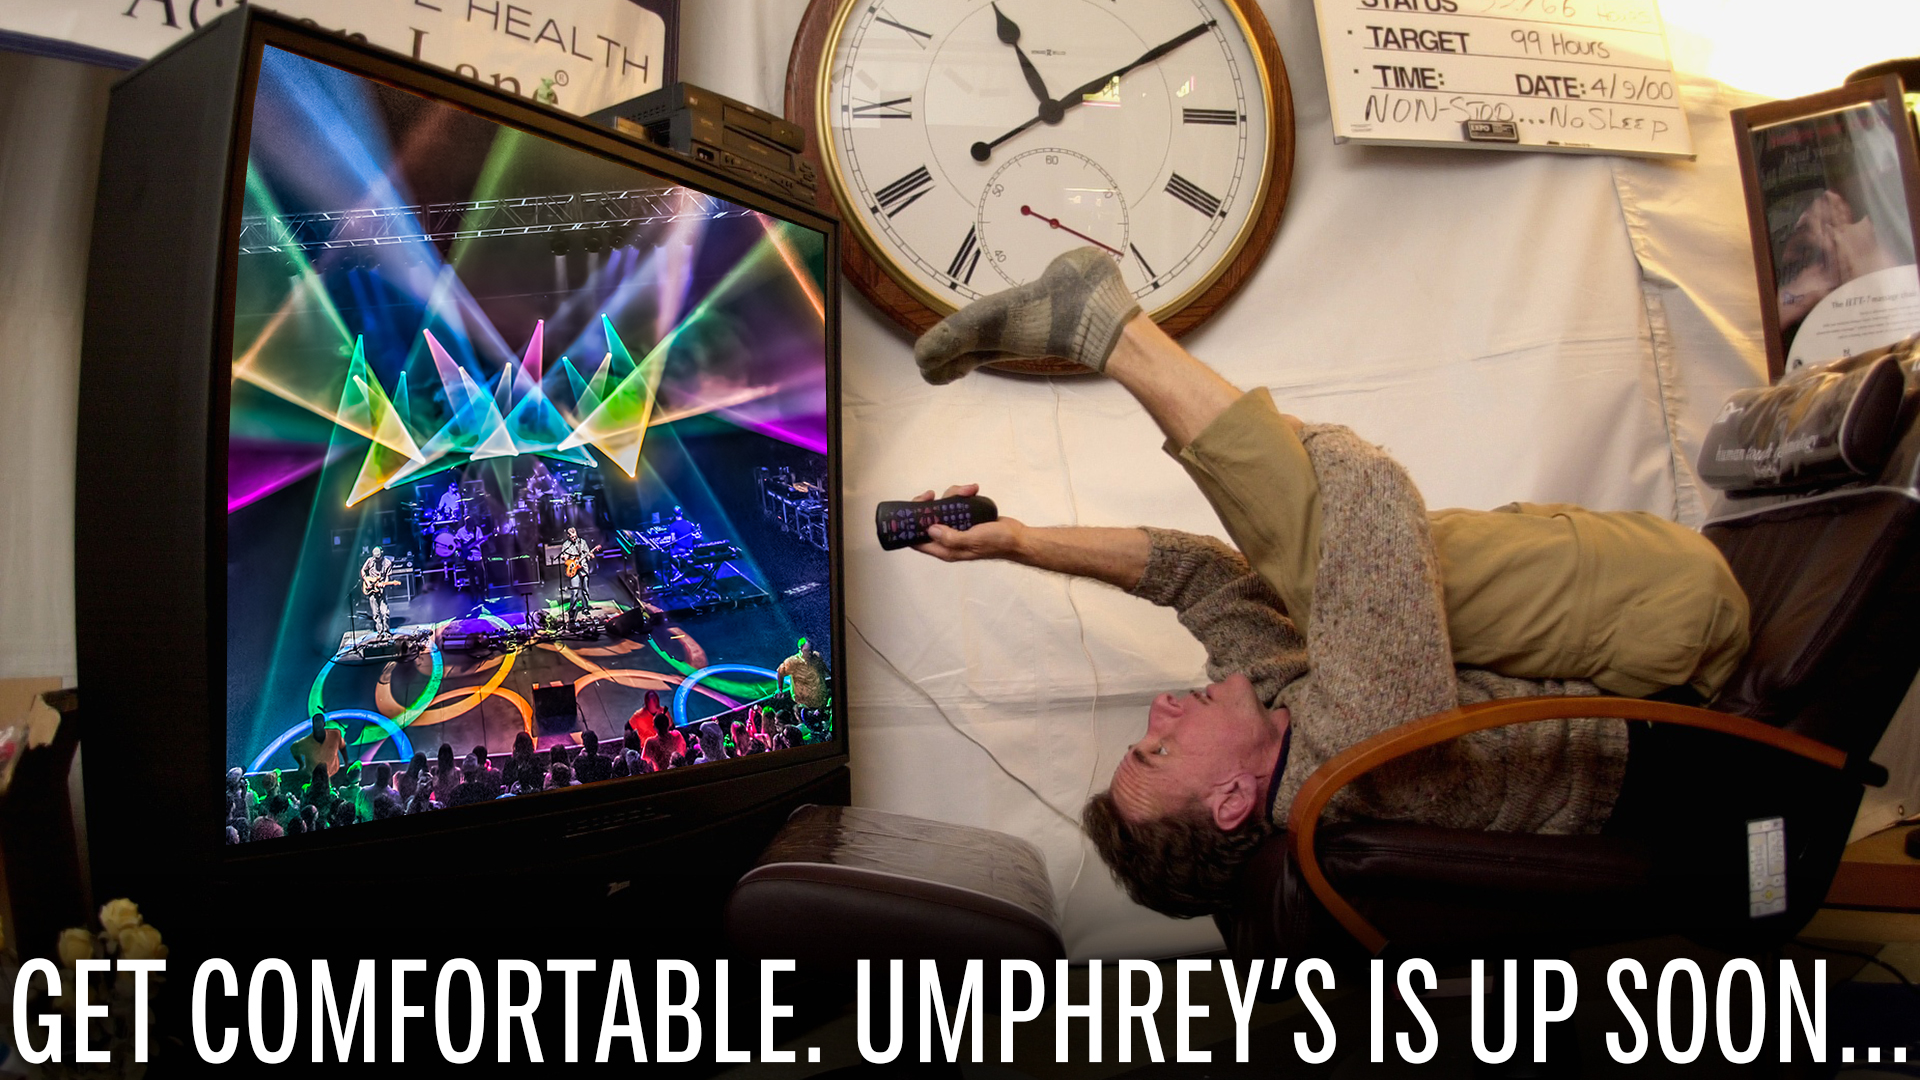 Get Comfortable. Umphrey's Is Up Soon... 16x9